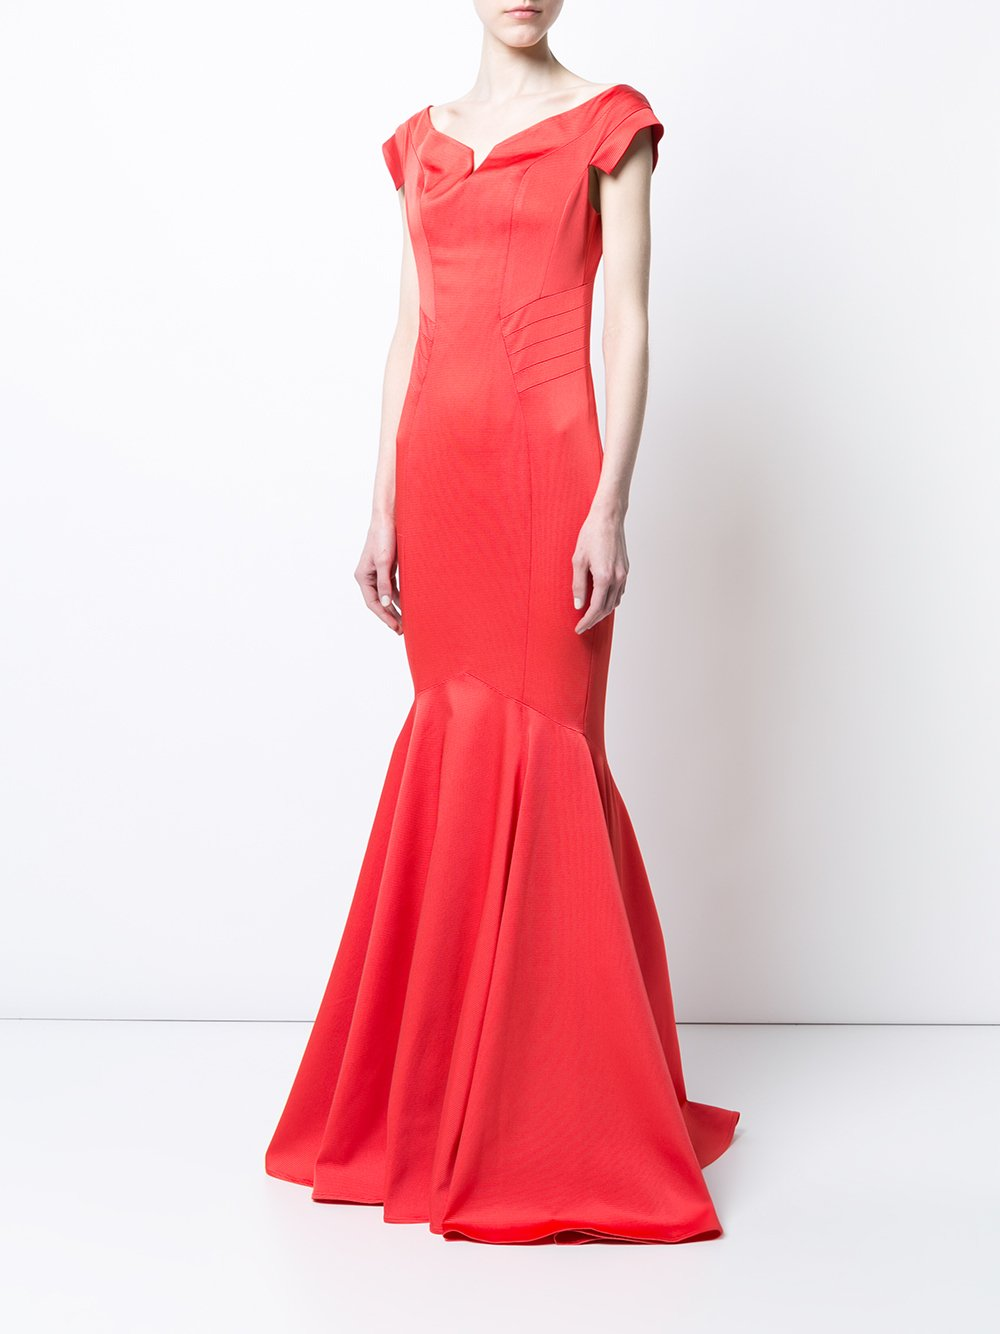 Evening | Zac Posen eCommerce